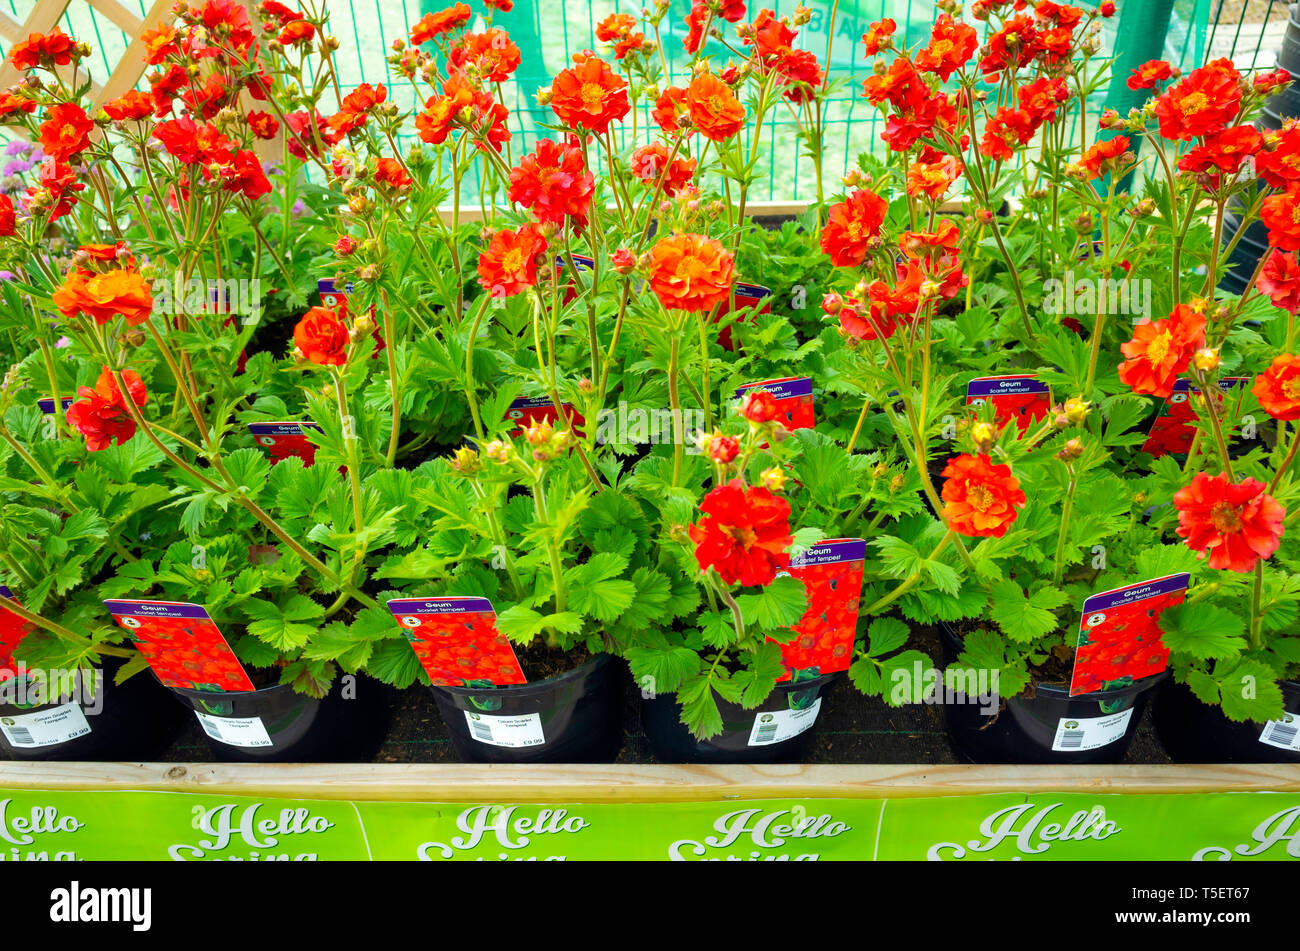 Garden centre display of young flower plants in early spring,  Geum Scarlet Tempest for sale as bedding plants for planting. Stock Photo